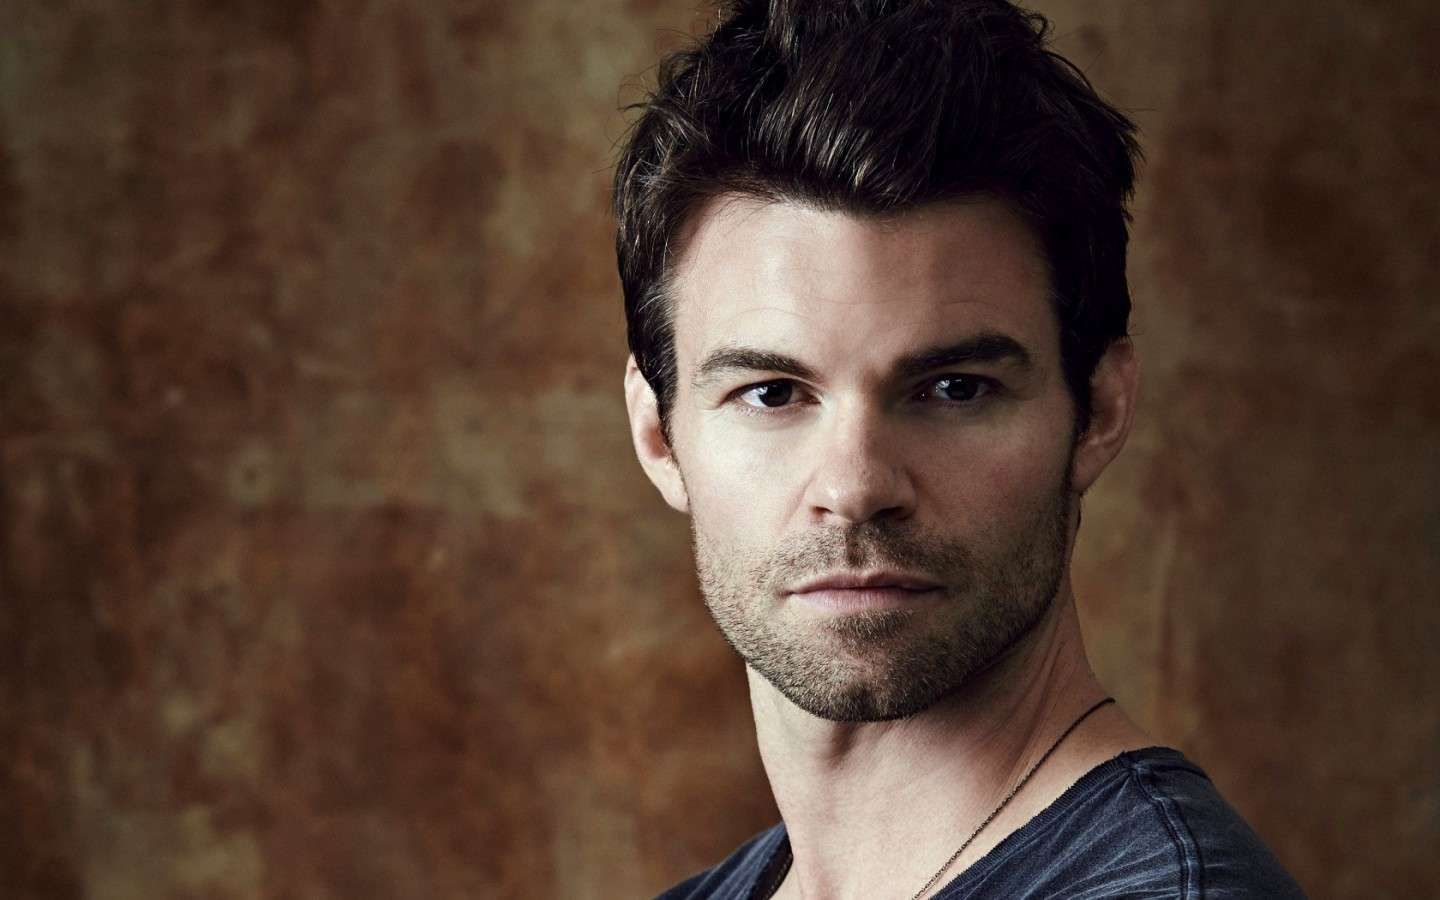 Scatto di Daniel Gillies